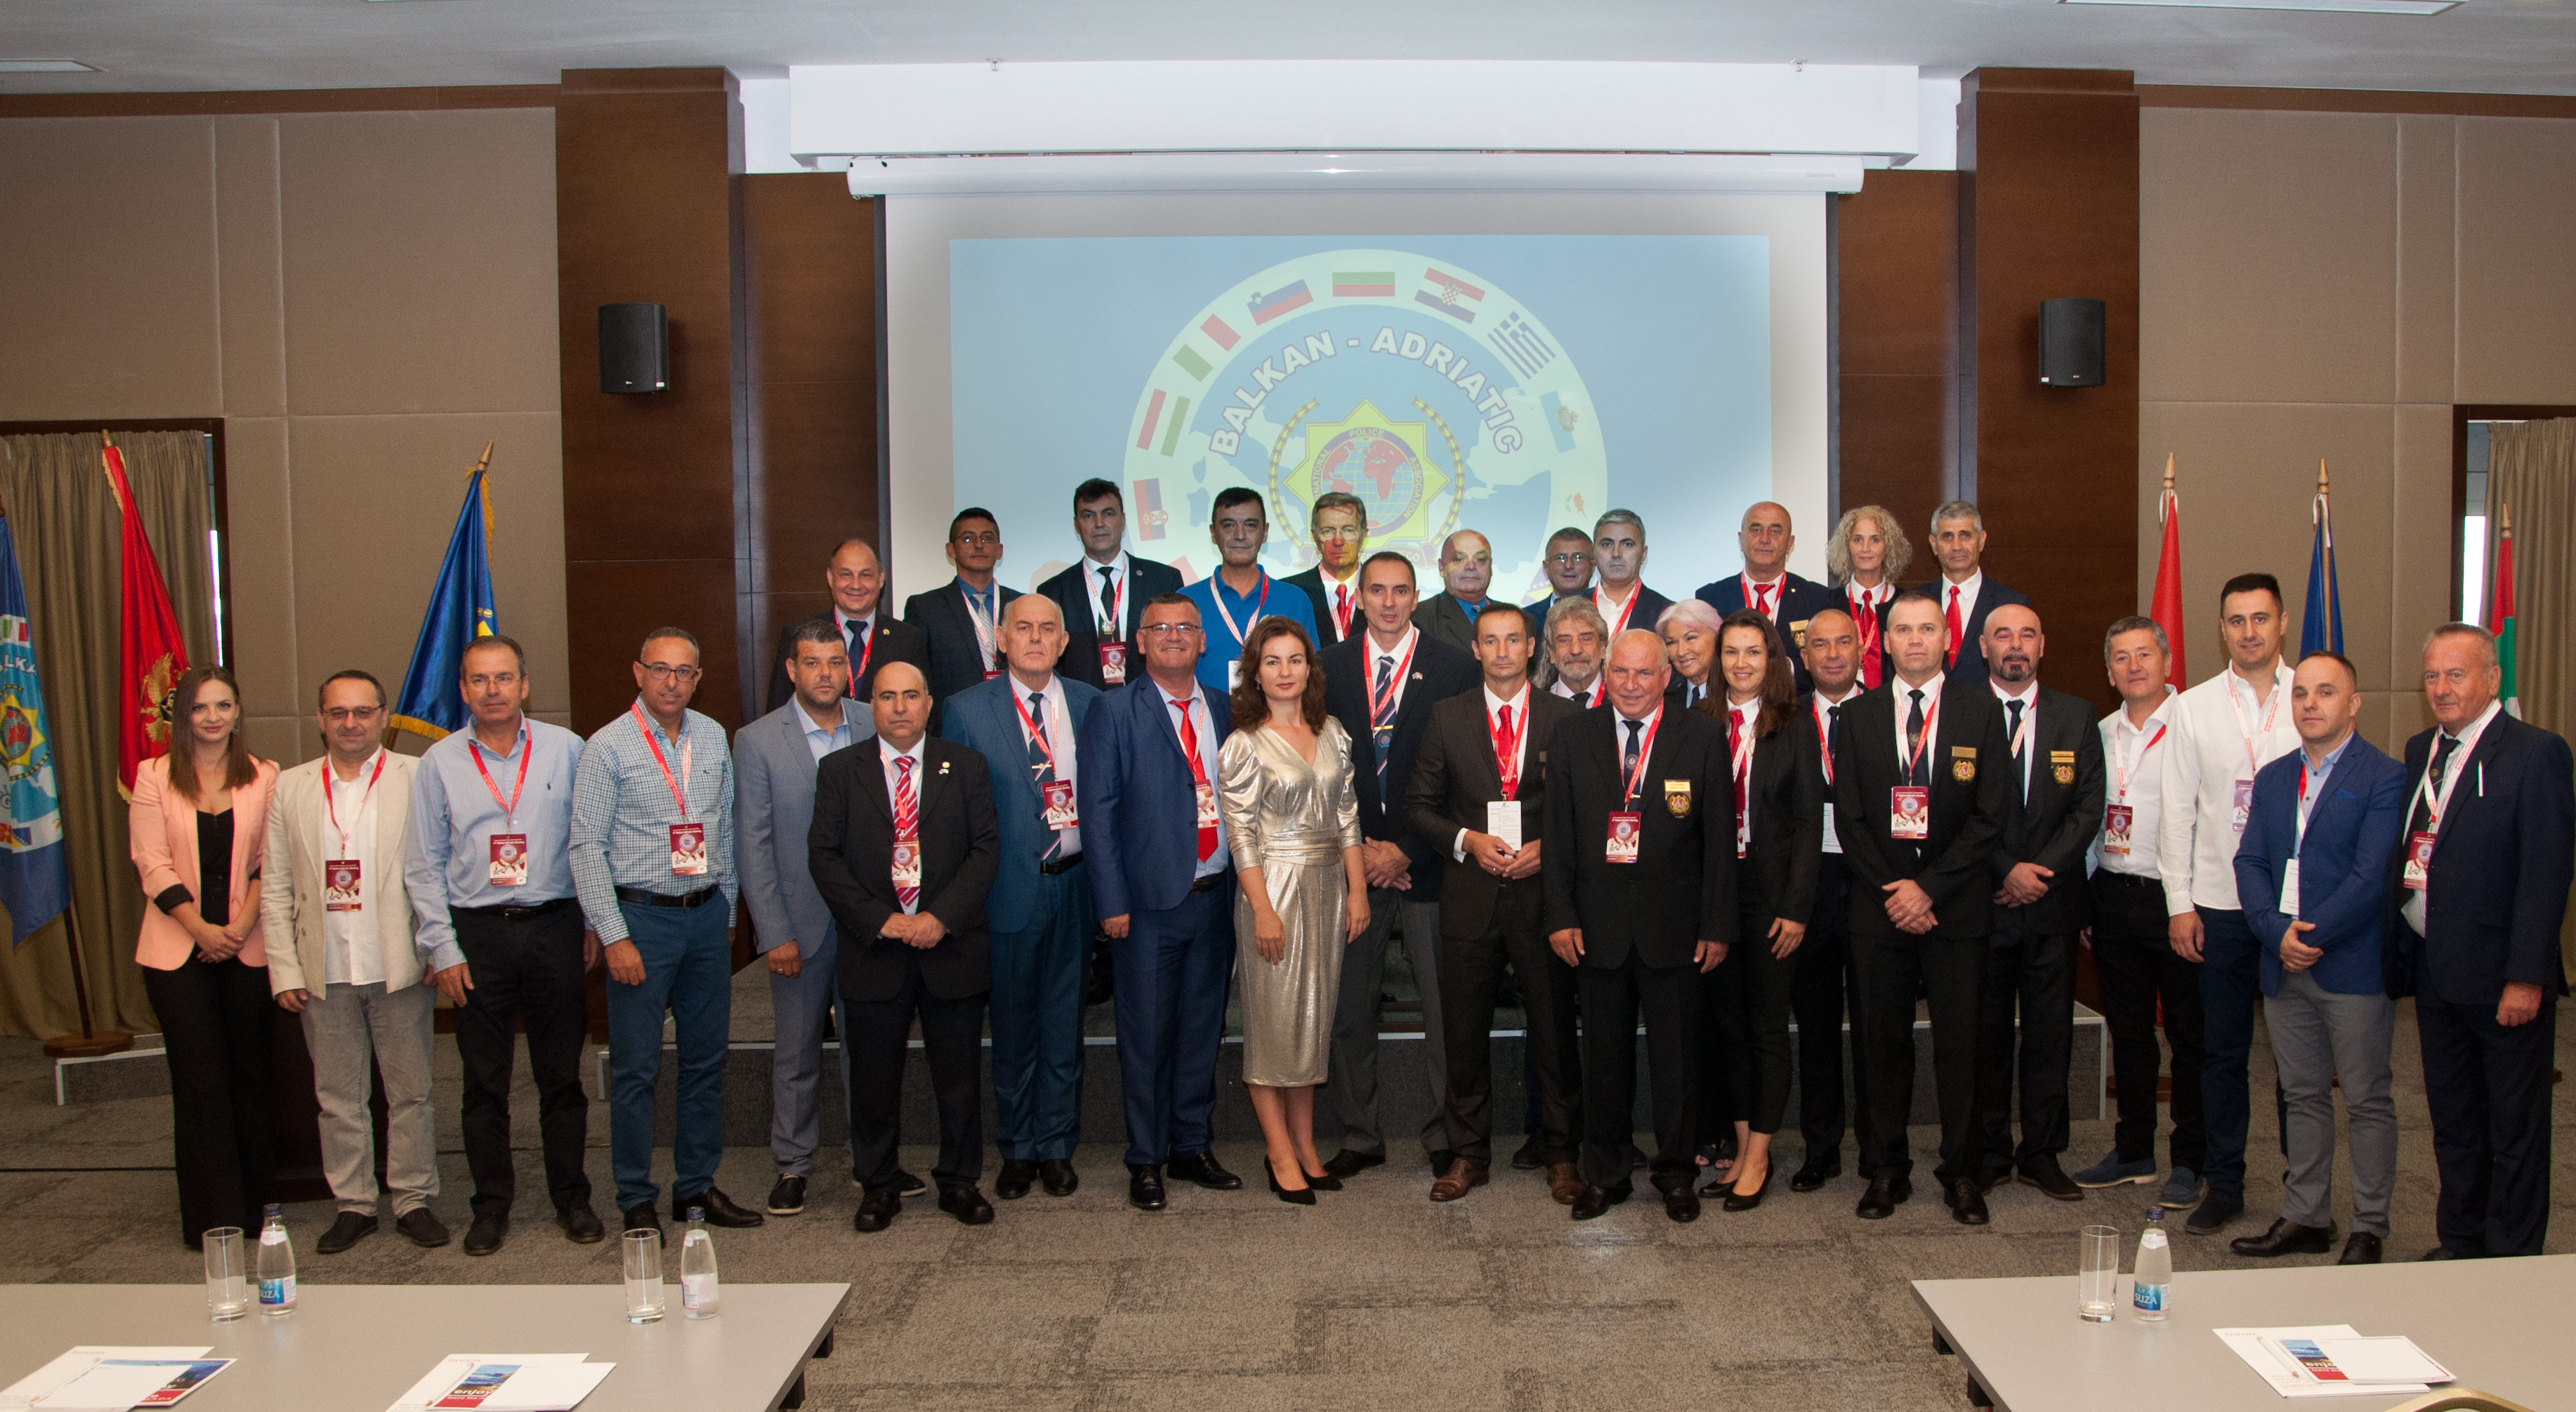 IPA Montenegro host the 5th Balkan-Adriatic Meeting